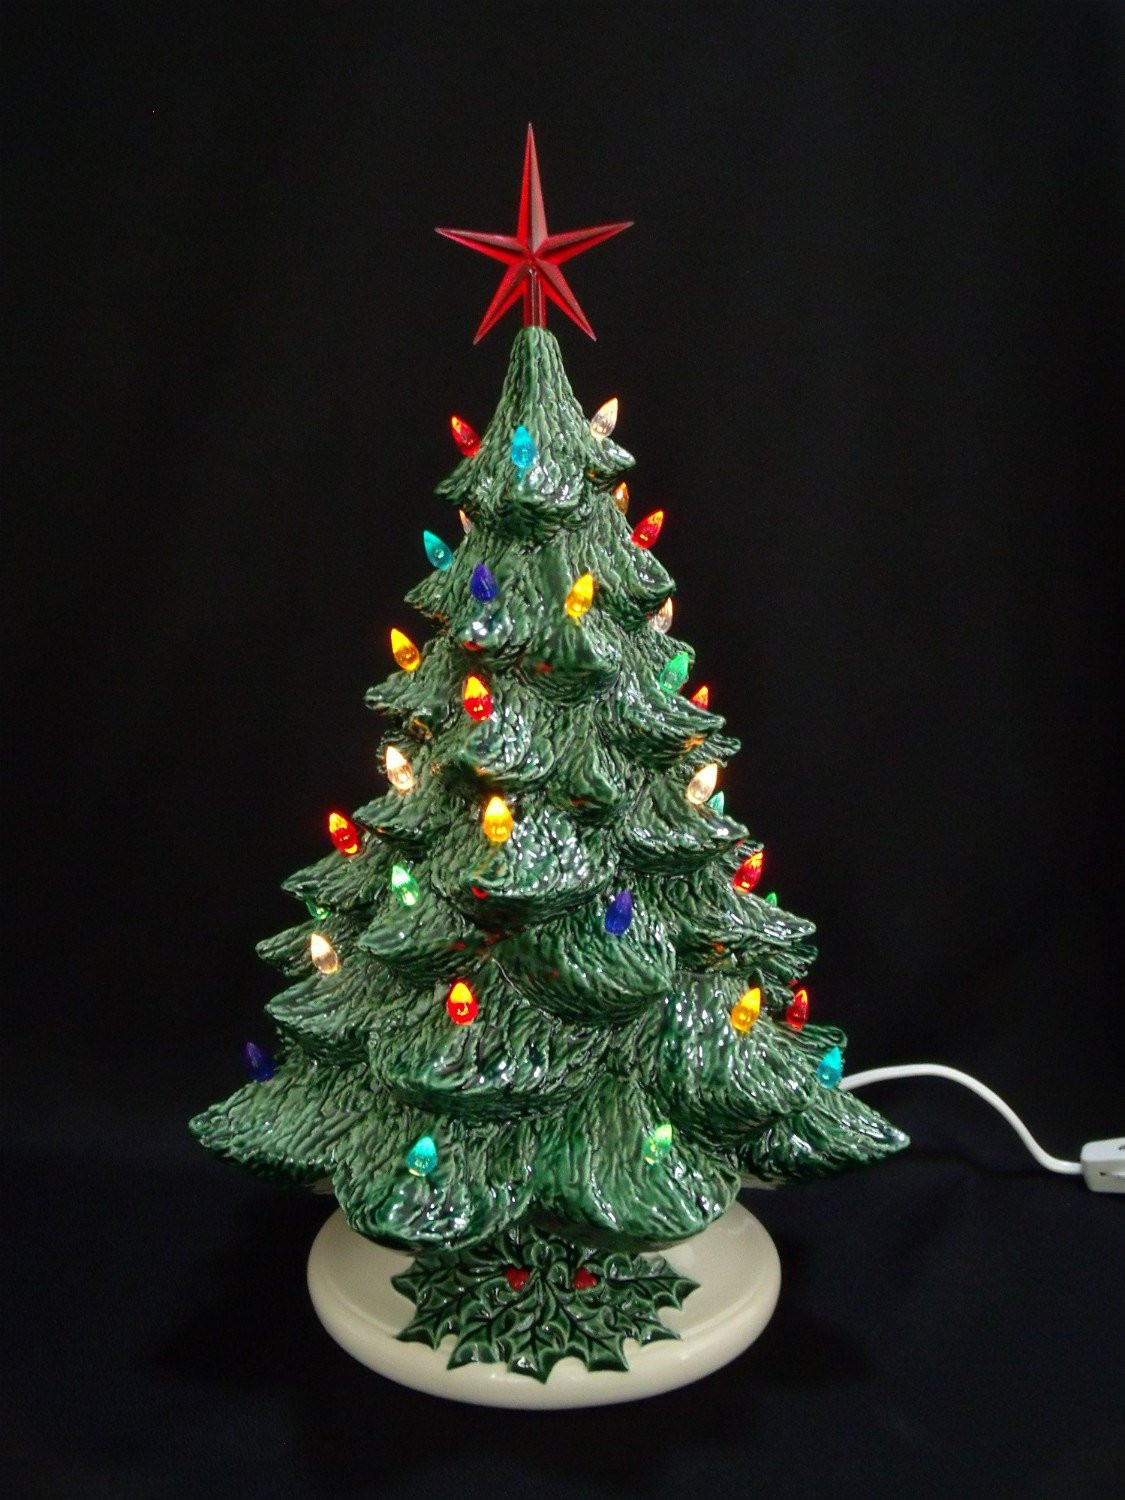 Old Fashioned Christmas Tree Awesome Old Fashioned Ceramic Christmas Tree 16 Inches Of Amazing 43 Photos Old Fashioned Christmas Tree